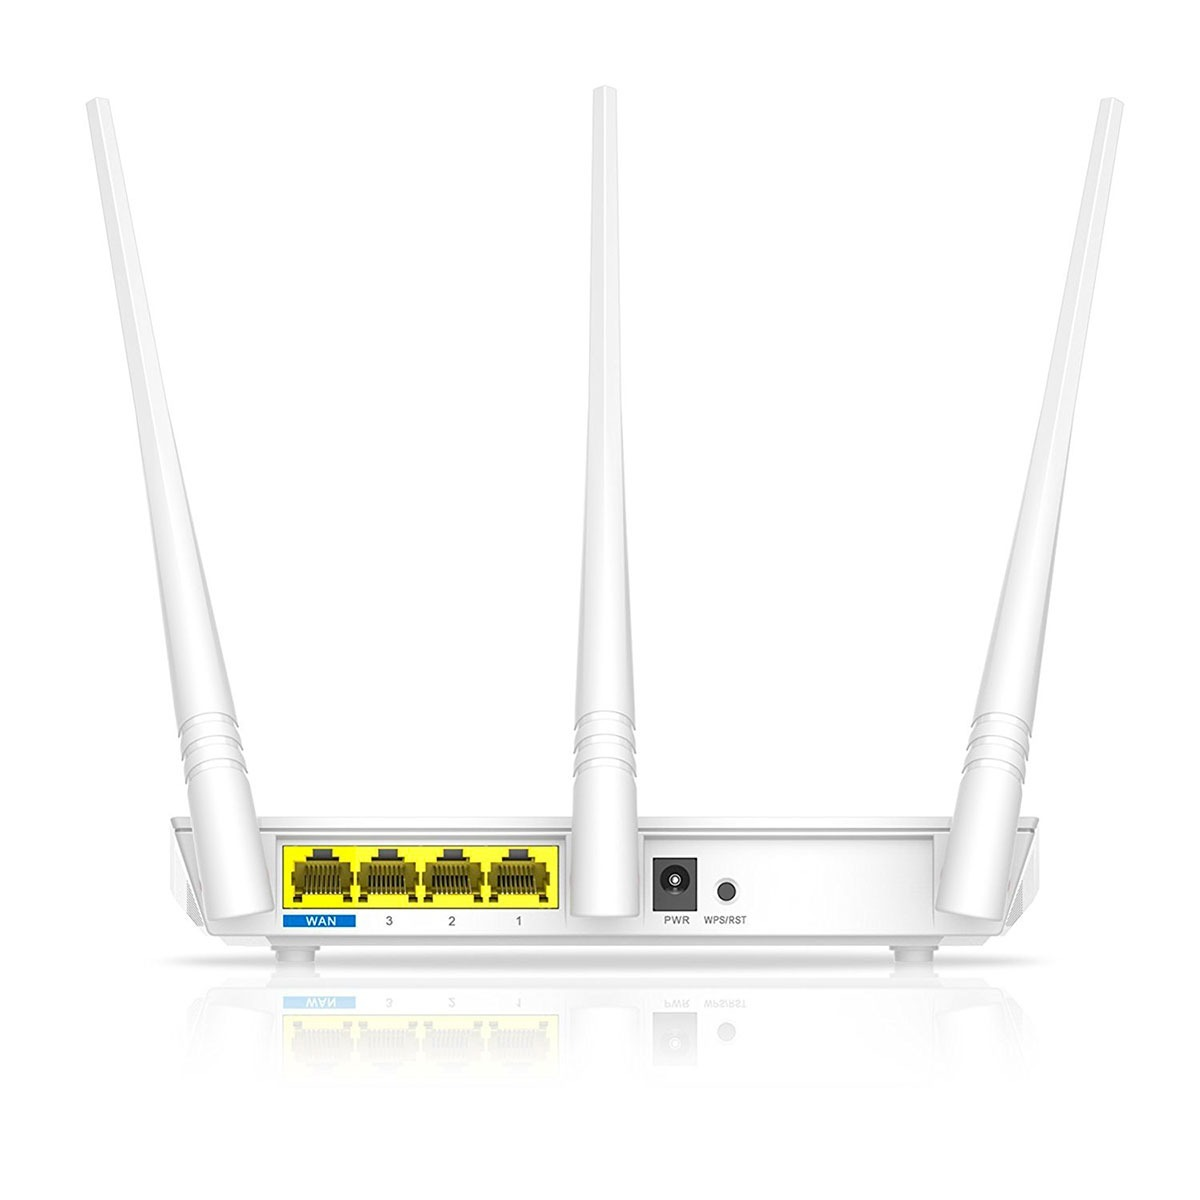 TENDA FH303 V2.0 ROUTER DRIVERS FOR PC